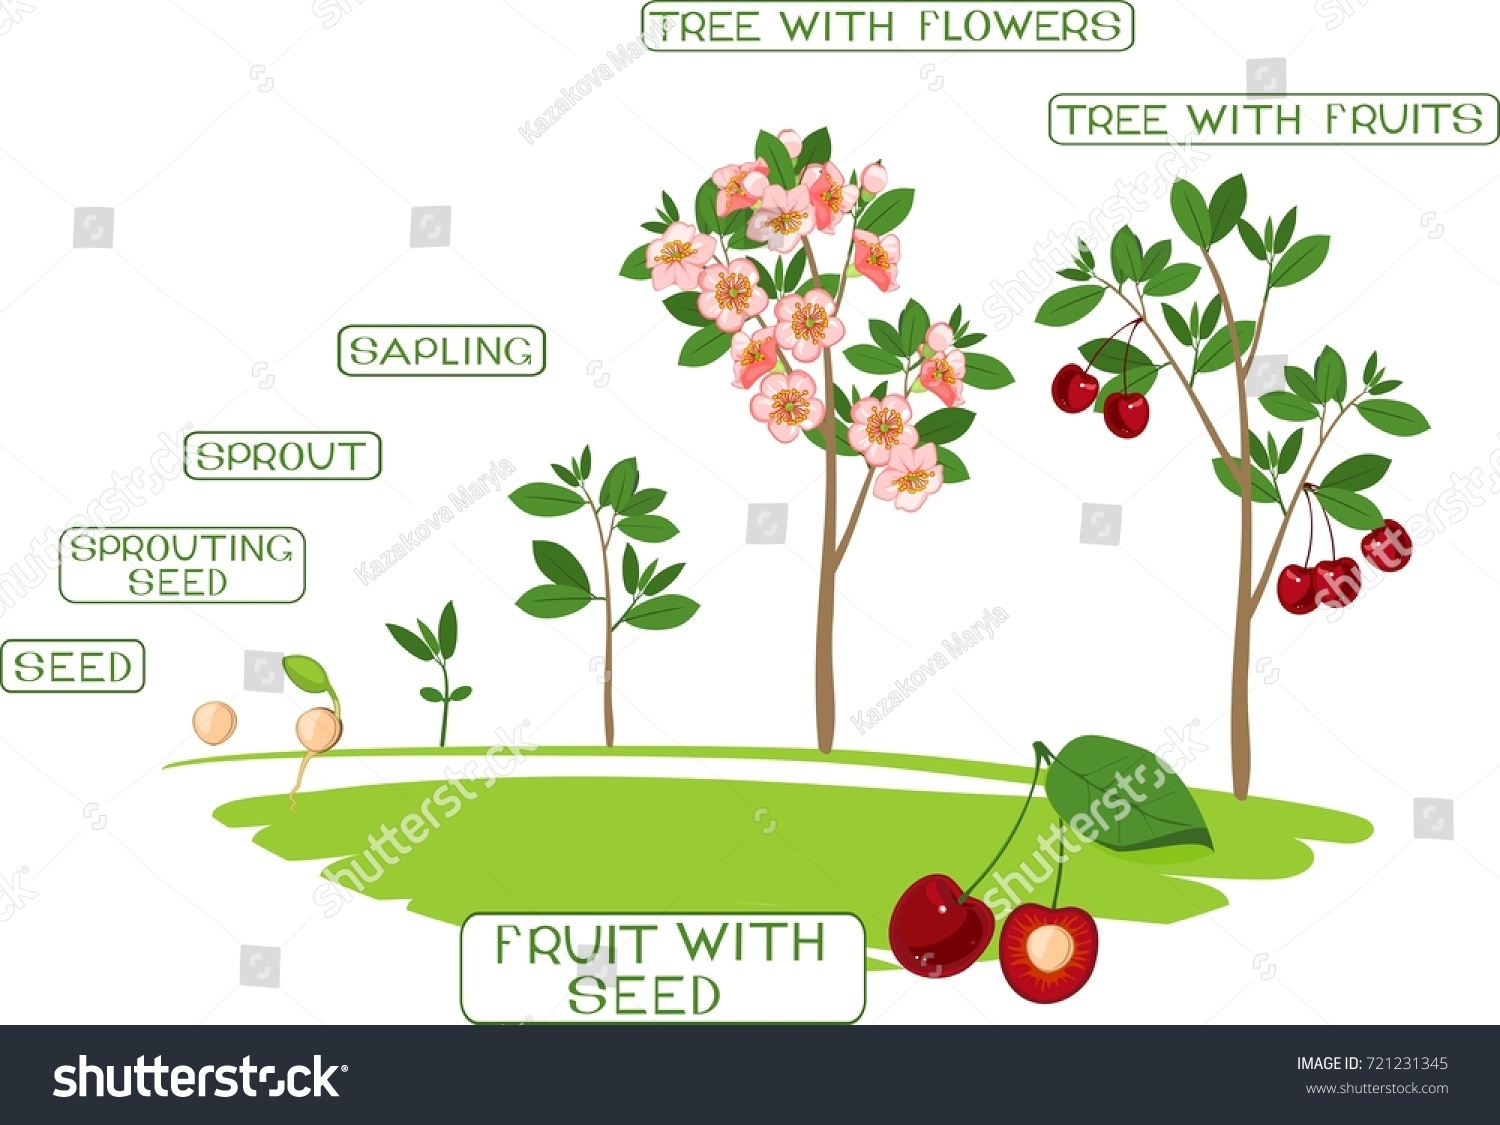 how to start growing an apple tree from seed